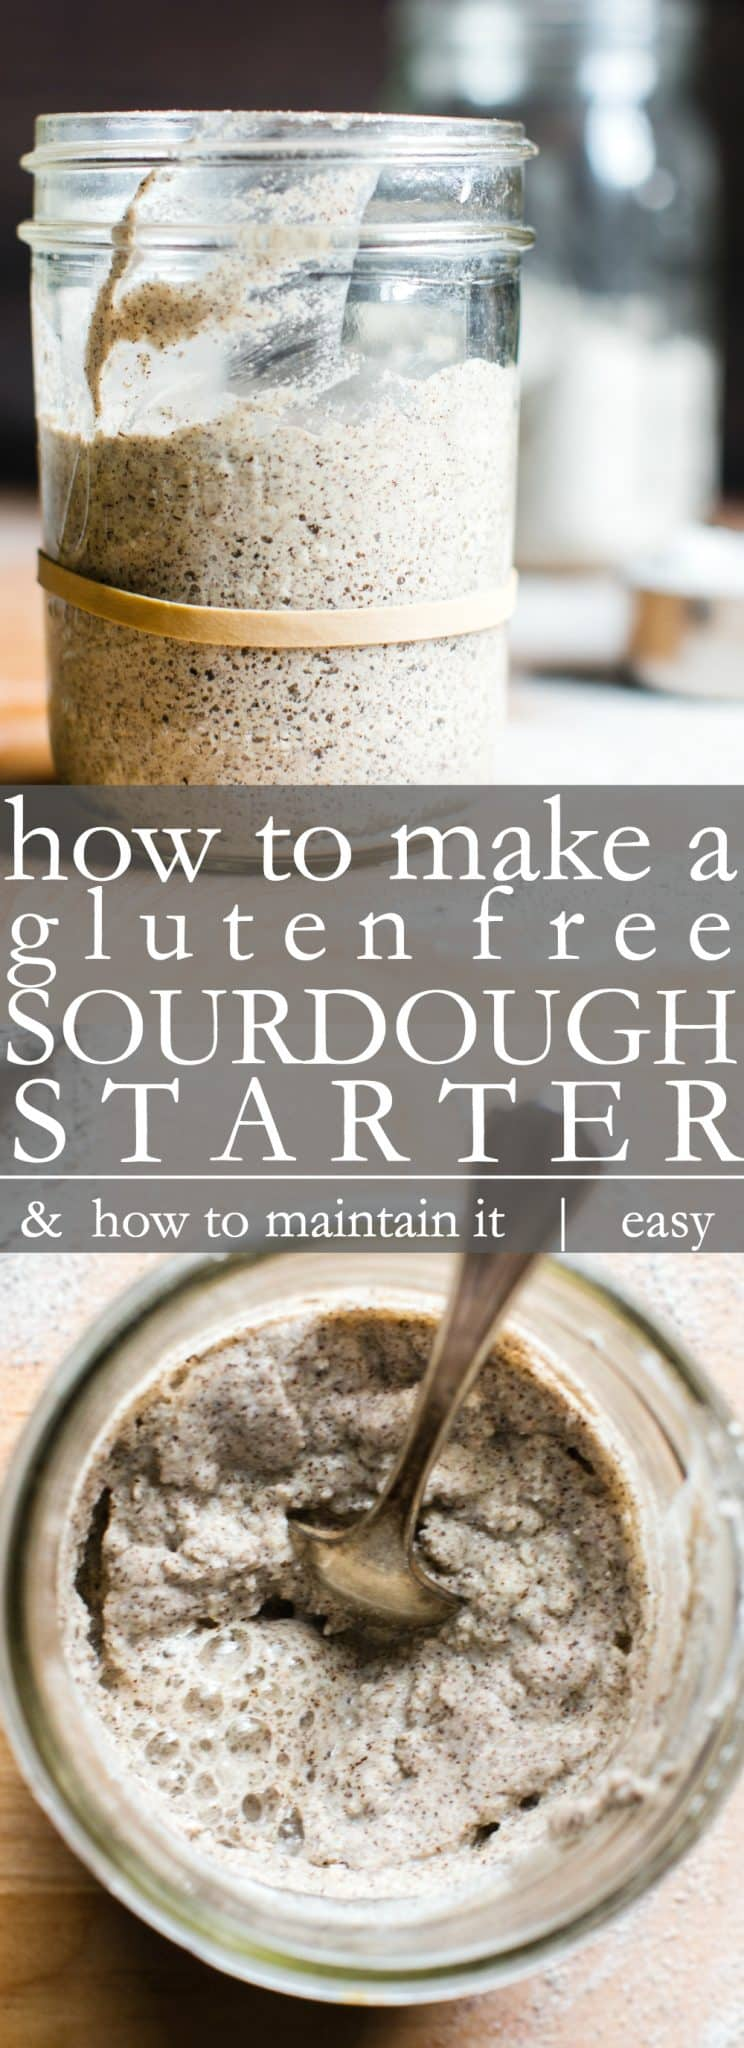 Making a gluten free sourdough starter couldn't be easier. Start with a few simple ingredients, a little time and patience, soon you'll be making delicious homemade gluten free sourdough bread, pancakes, and waffles! #Glutenfreesourdoughbread #GlutenFreeSourdough #SourdoughStarter #GlutenFreeSourdoughStarter